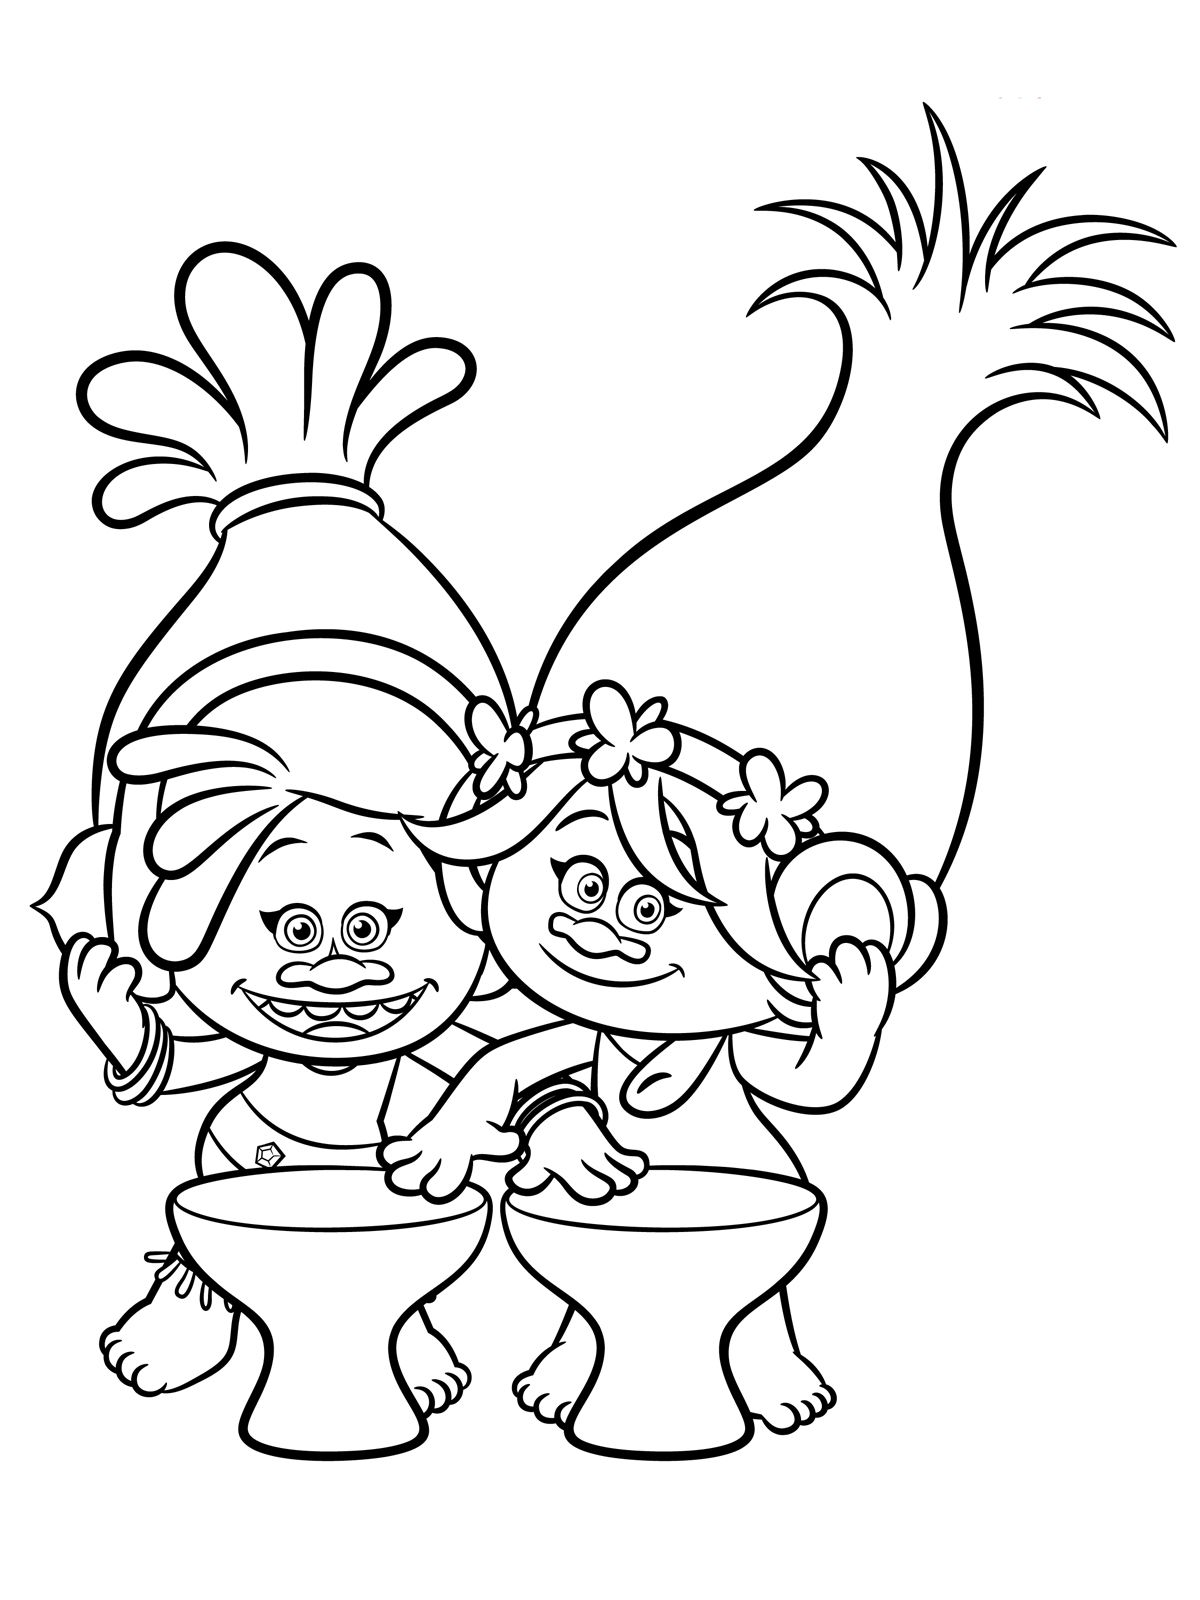 Free coloring pages to print and color - Trolls Coloring Pages To Download And Print For Free